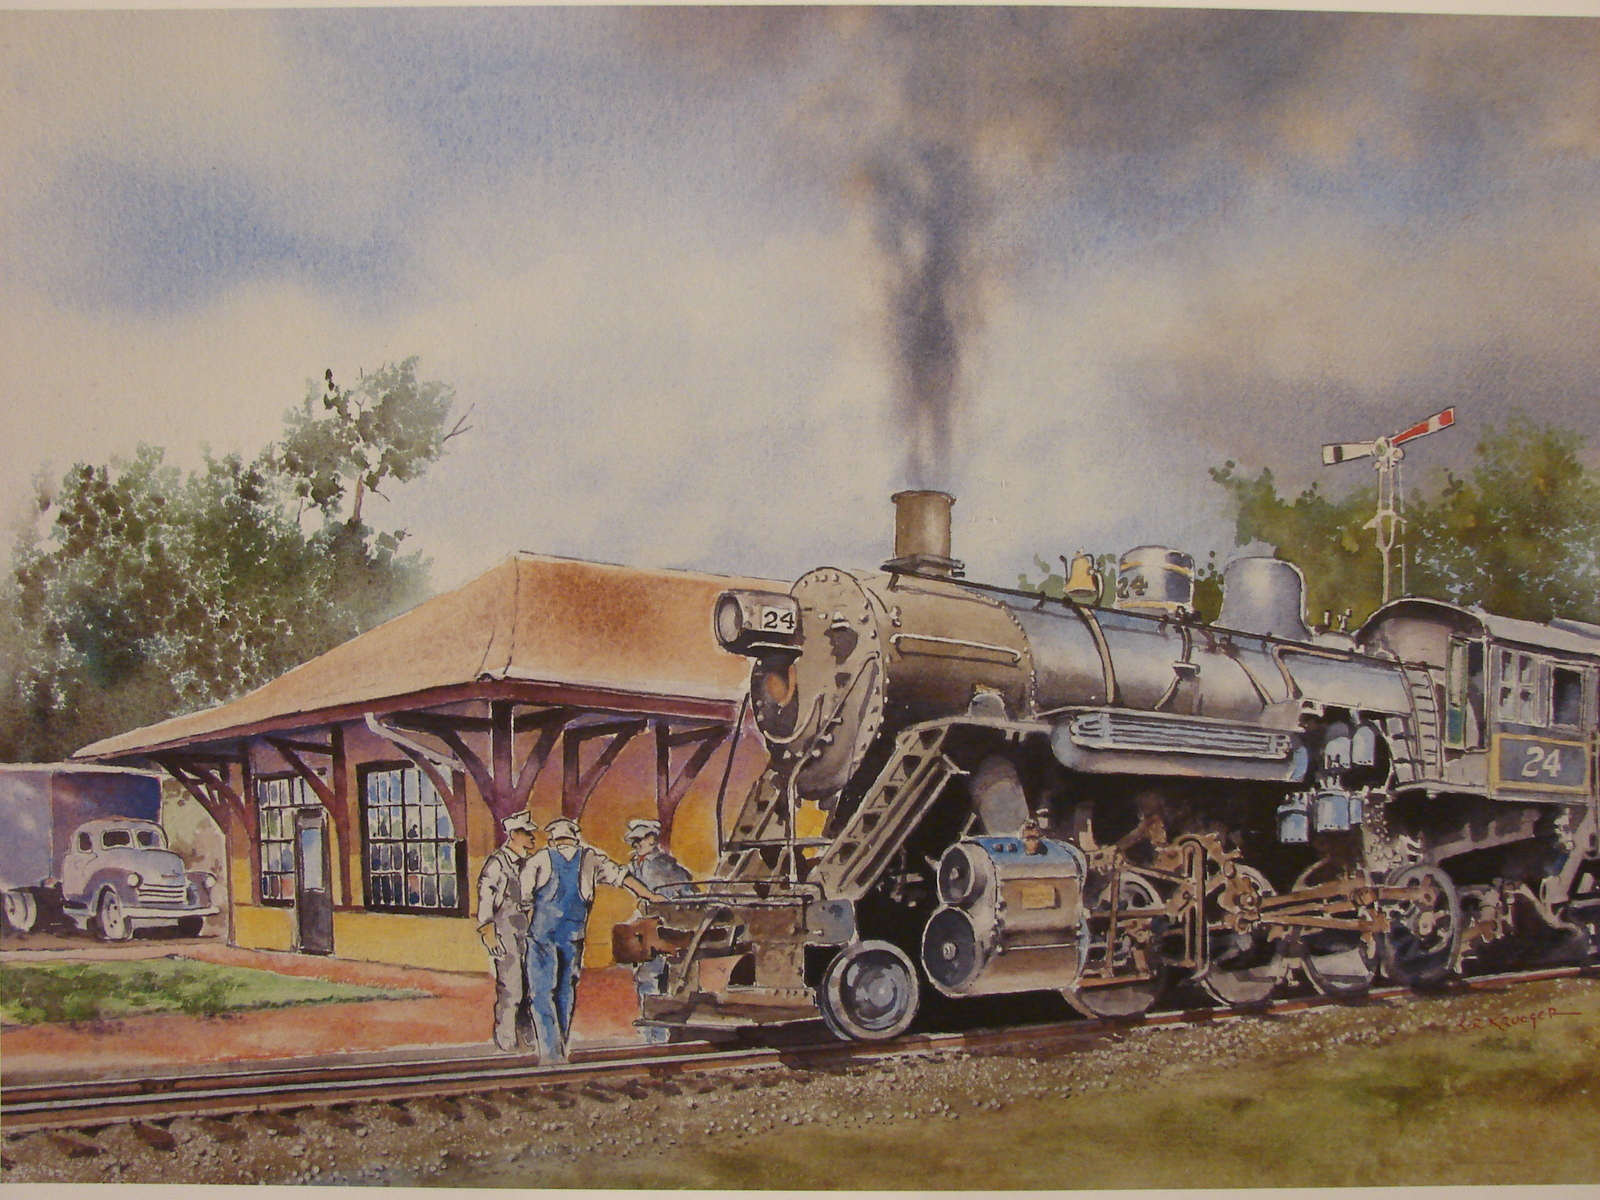 National Railroad Museum Signed , Numbered Print (2012 ) by Steve Krueger